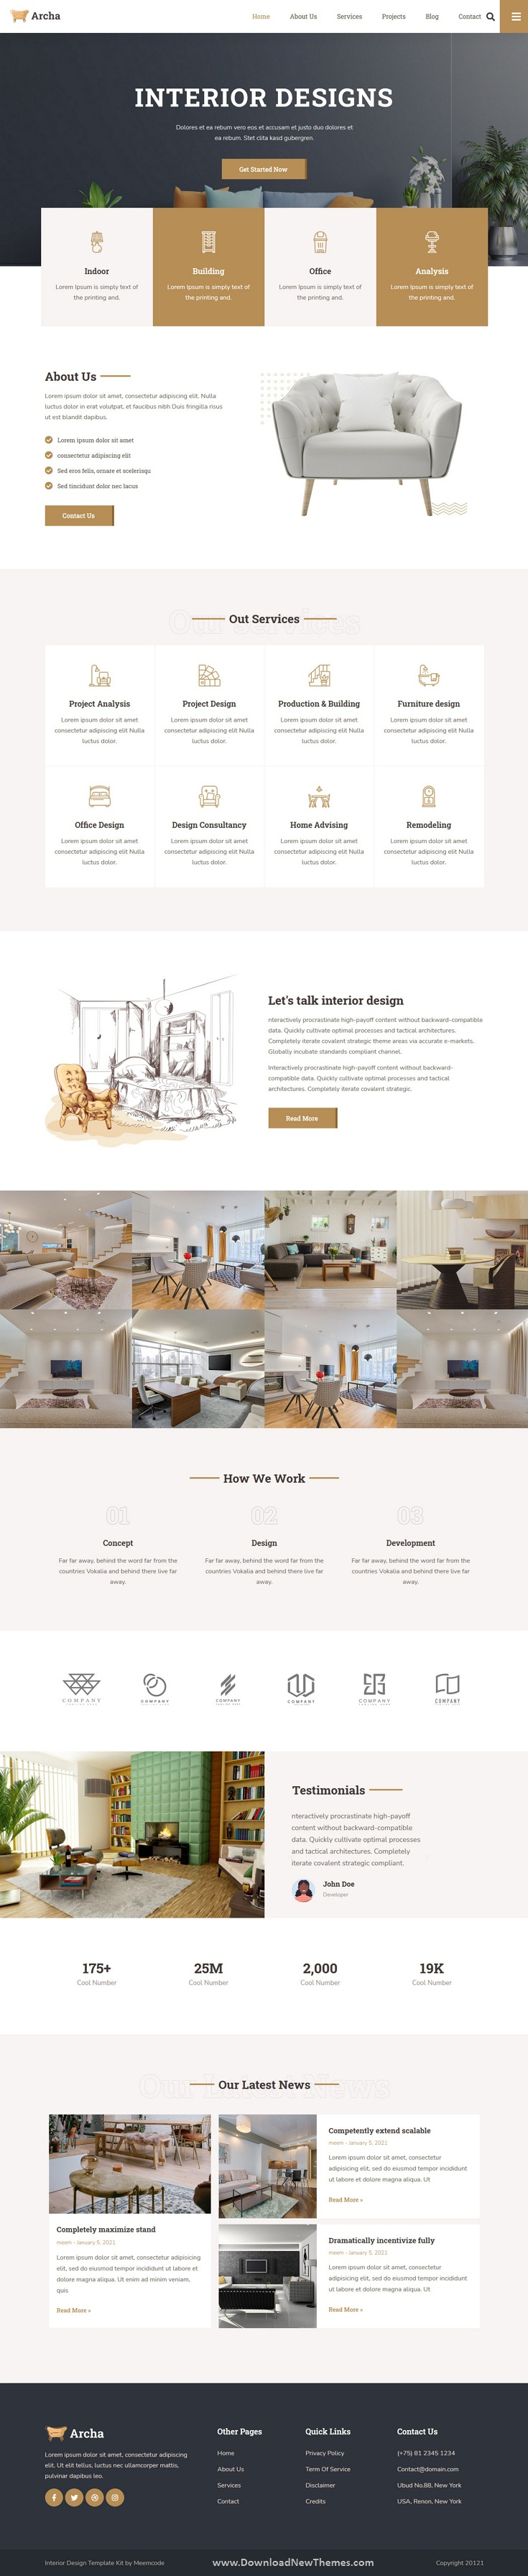 Interior Design and Architecture Elementor Template Kit